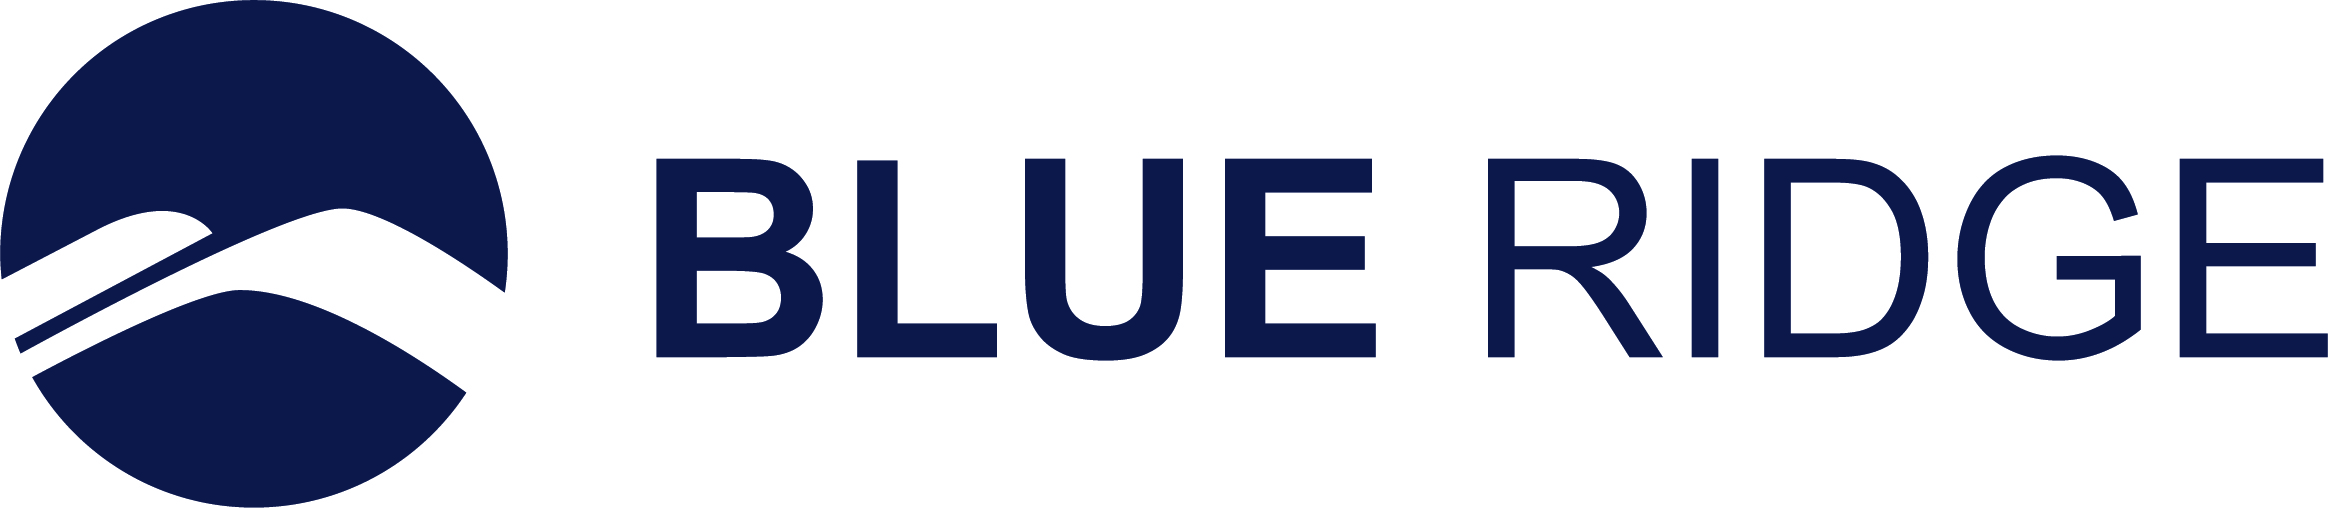 Blue Ridge Announces Strategic Growth Investment from Great Hill Partners